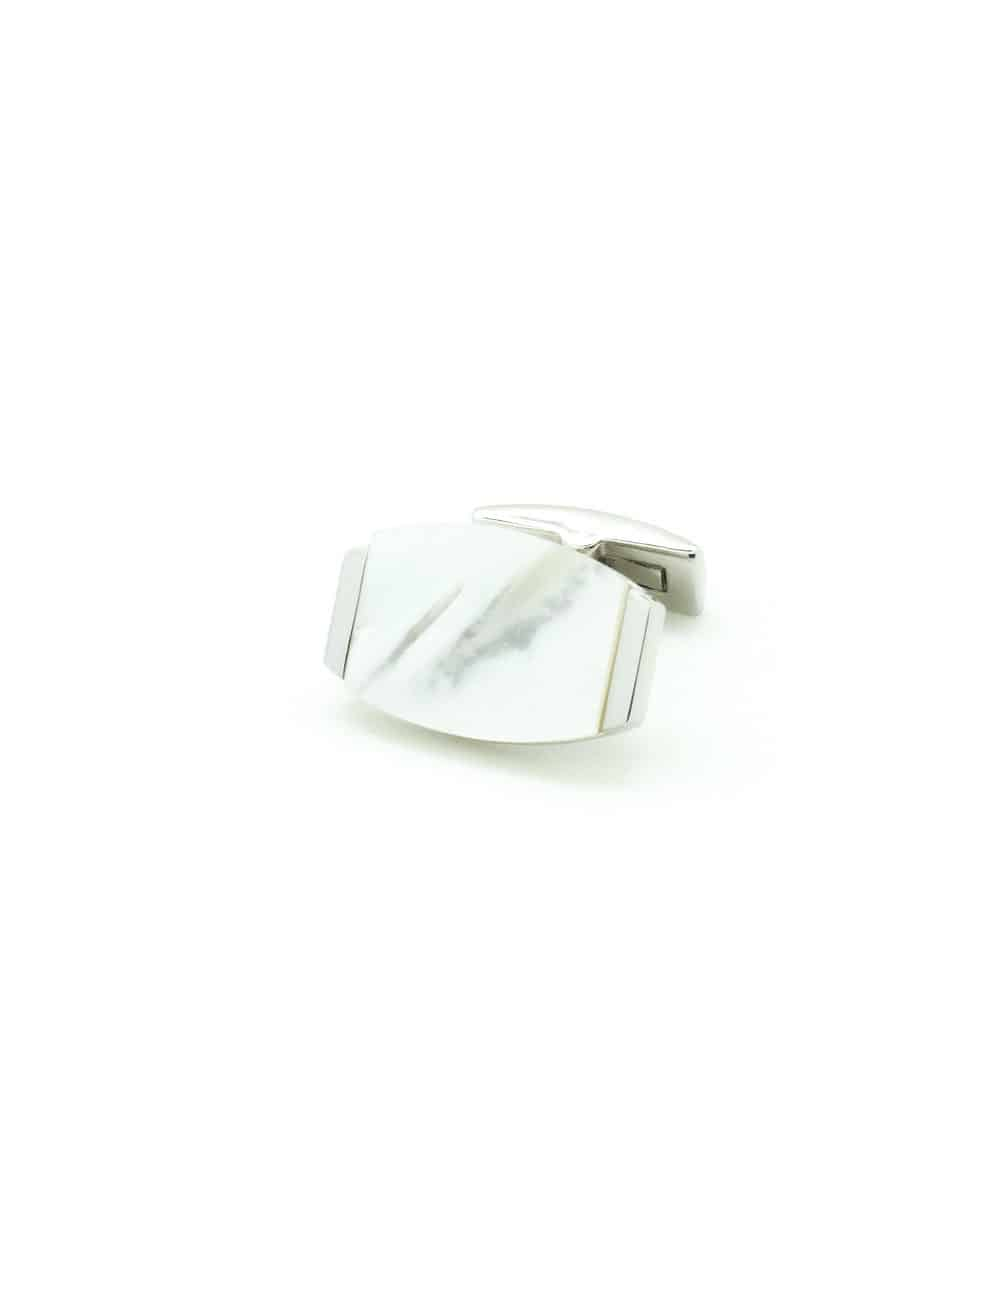 White Pearl in Silver Rounded Rectangle Cufflink C131FP-078A.